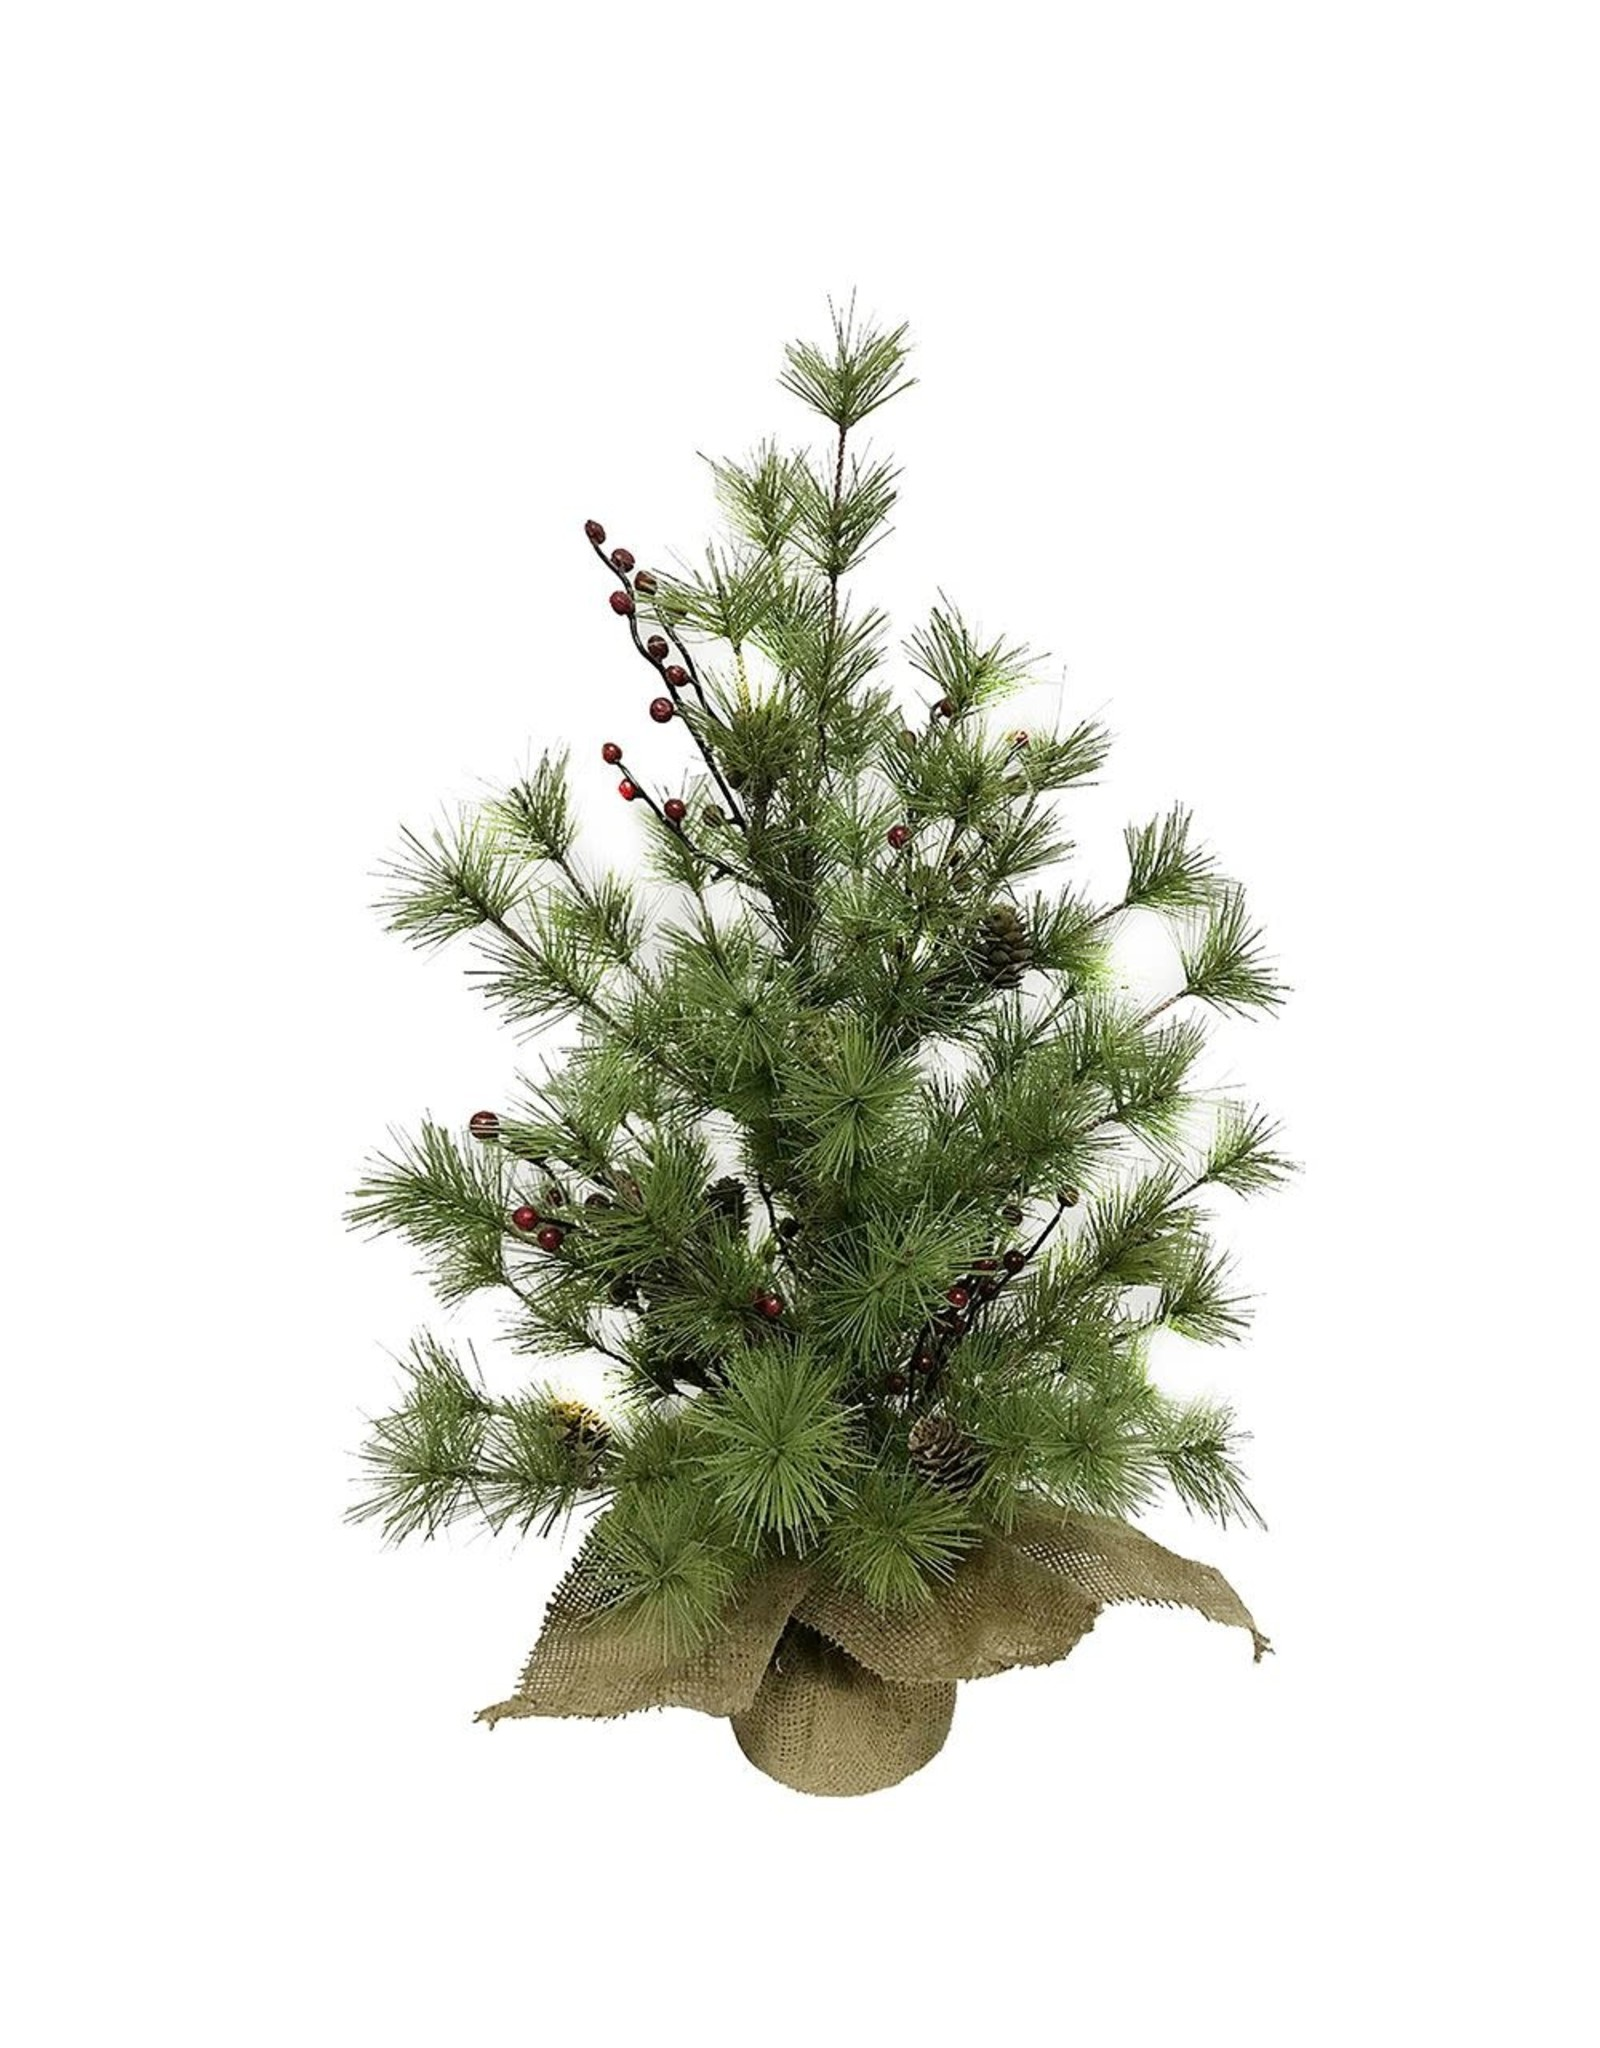 Kurt Adler Pine Tree With Red Berries And Pinecones 2 FT Non-Lit